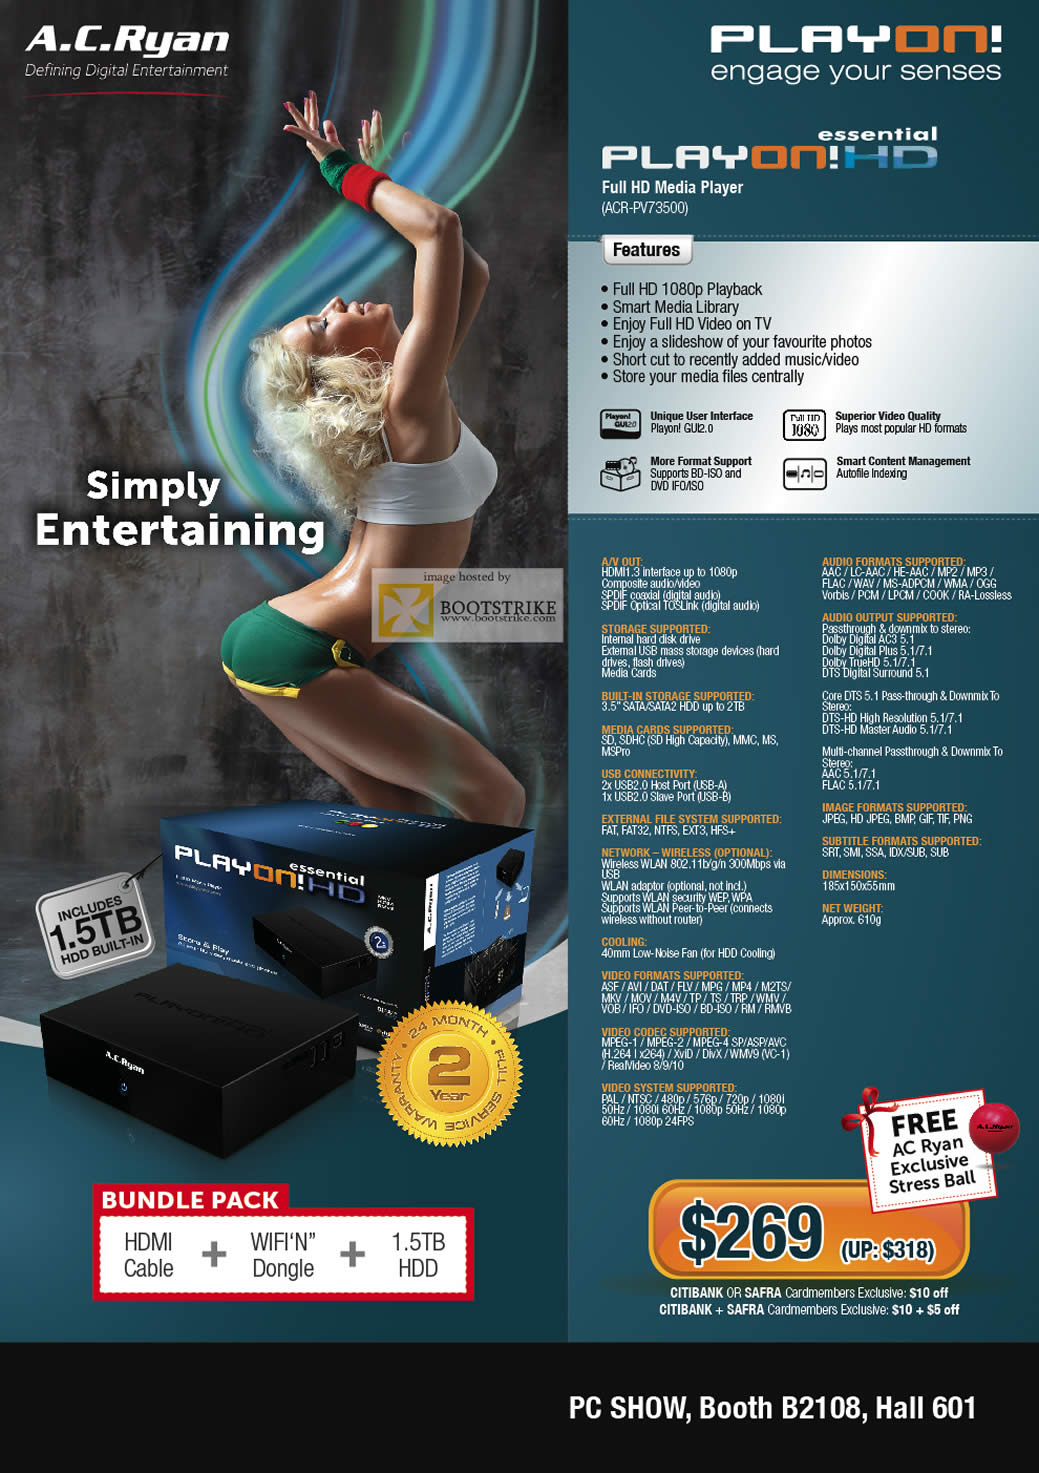 PC Show 2011 price list image brochure of A.C. Ryan Play On! HD Essential ACR-PV73500 Media Player